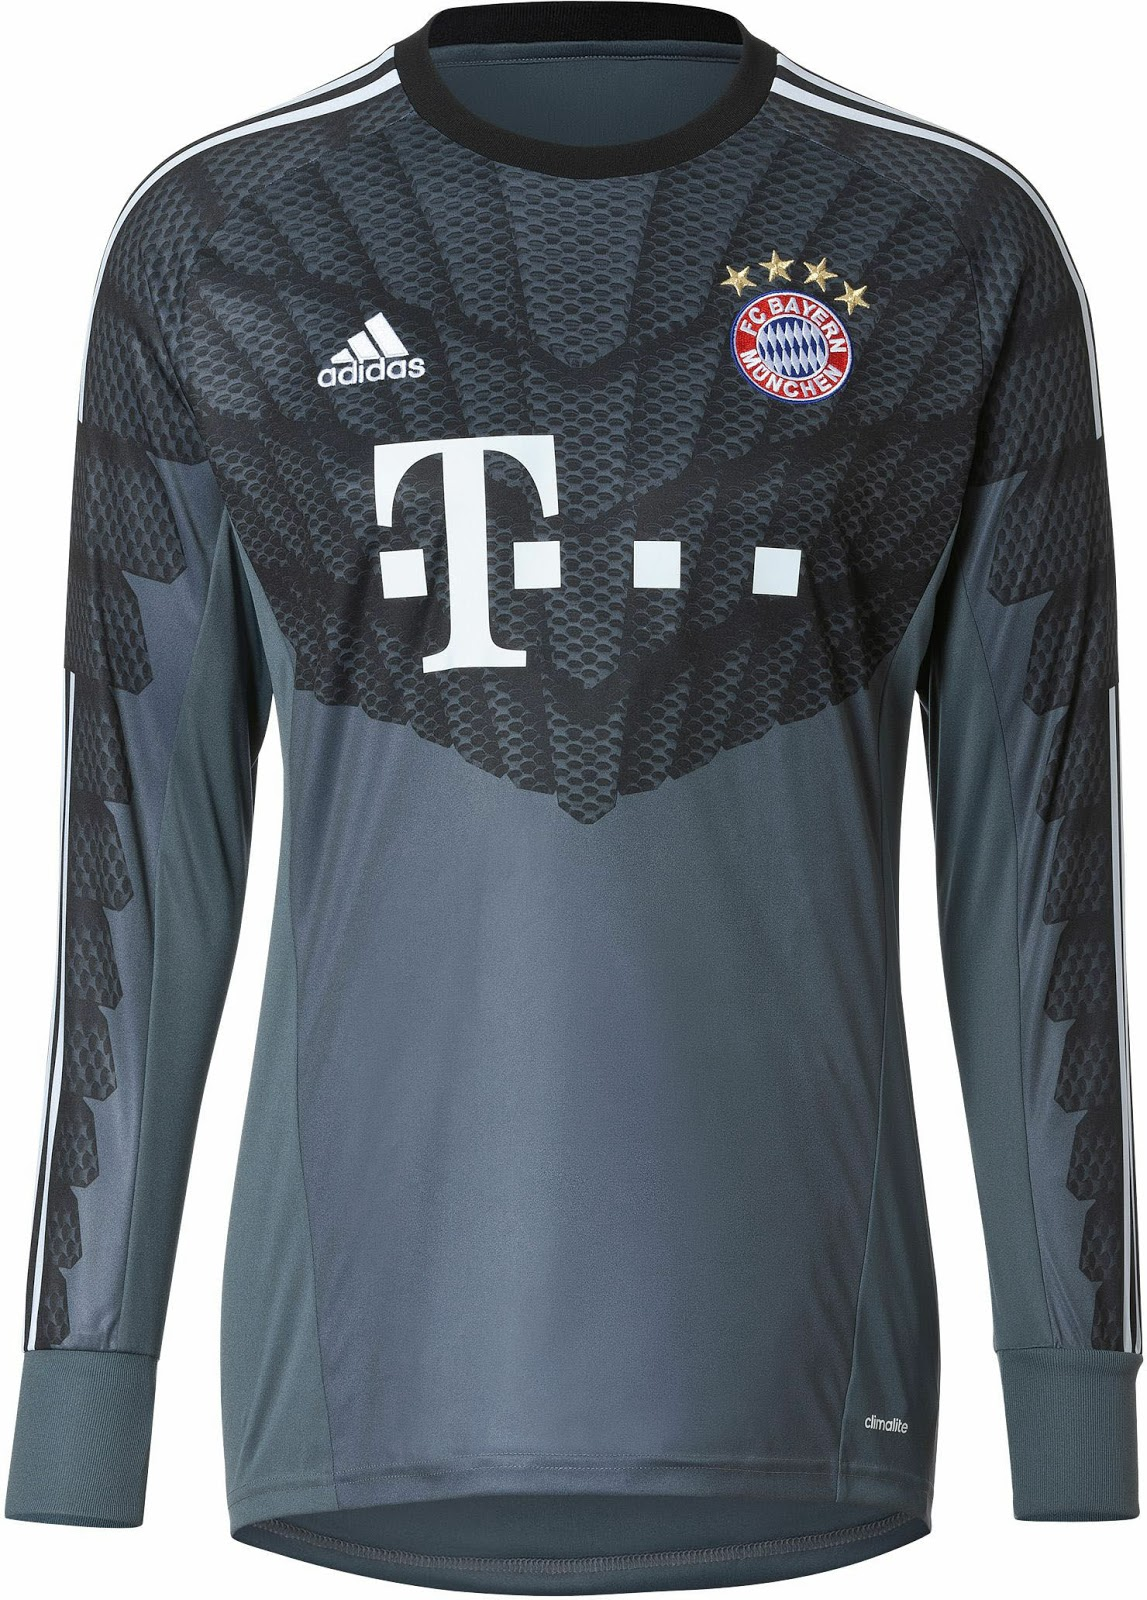 the latest c55ab f05a0 Footy News: FC Bayern Munchen Home, Away, Third and ...